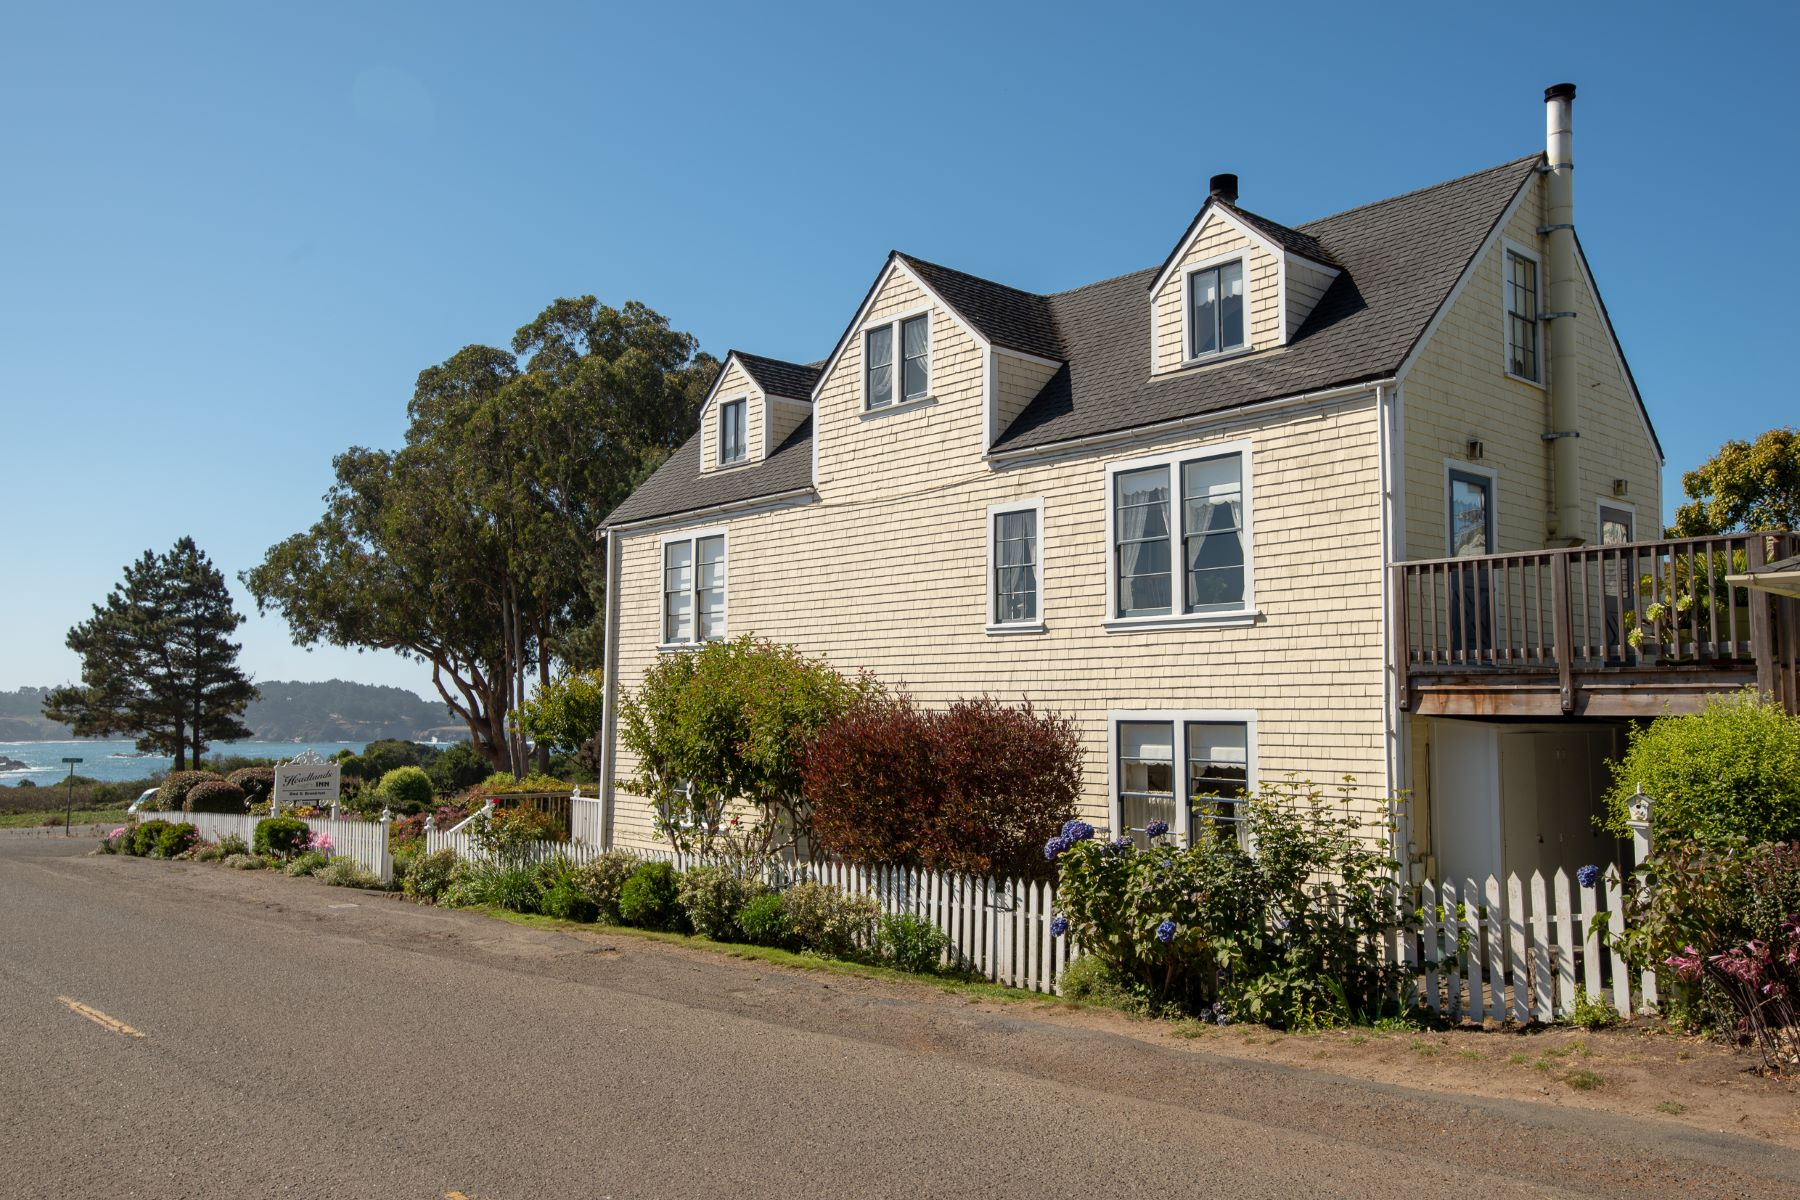 Additional photo for property listing at Headlands Inn 10453 Howard Street Mendocino, California 95460 United States